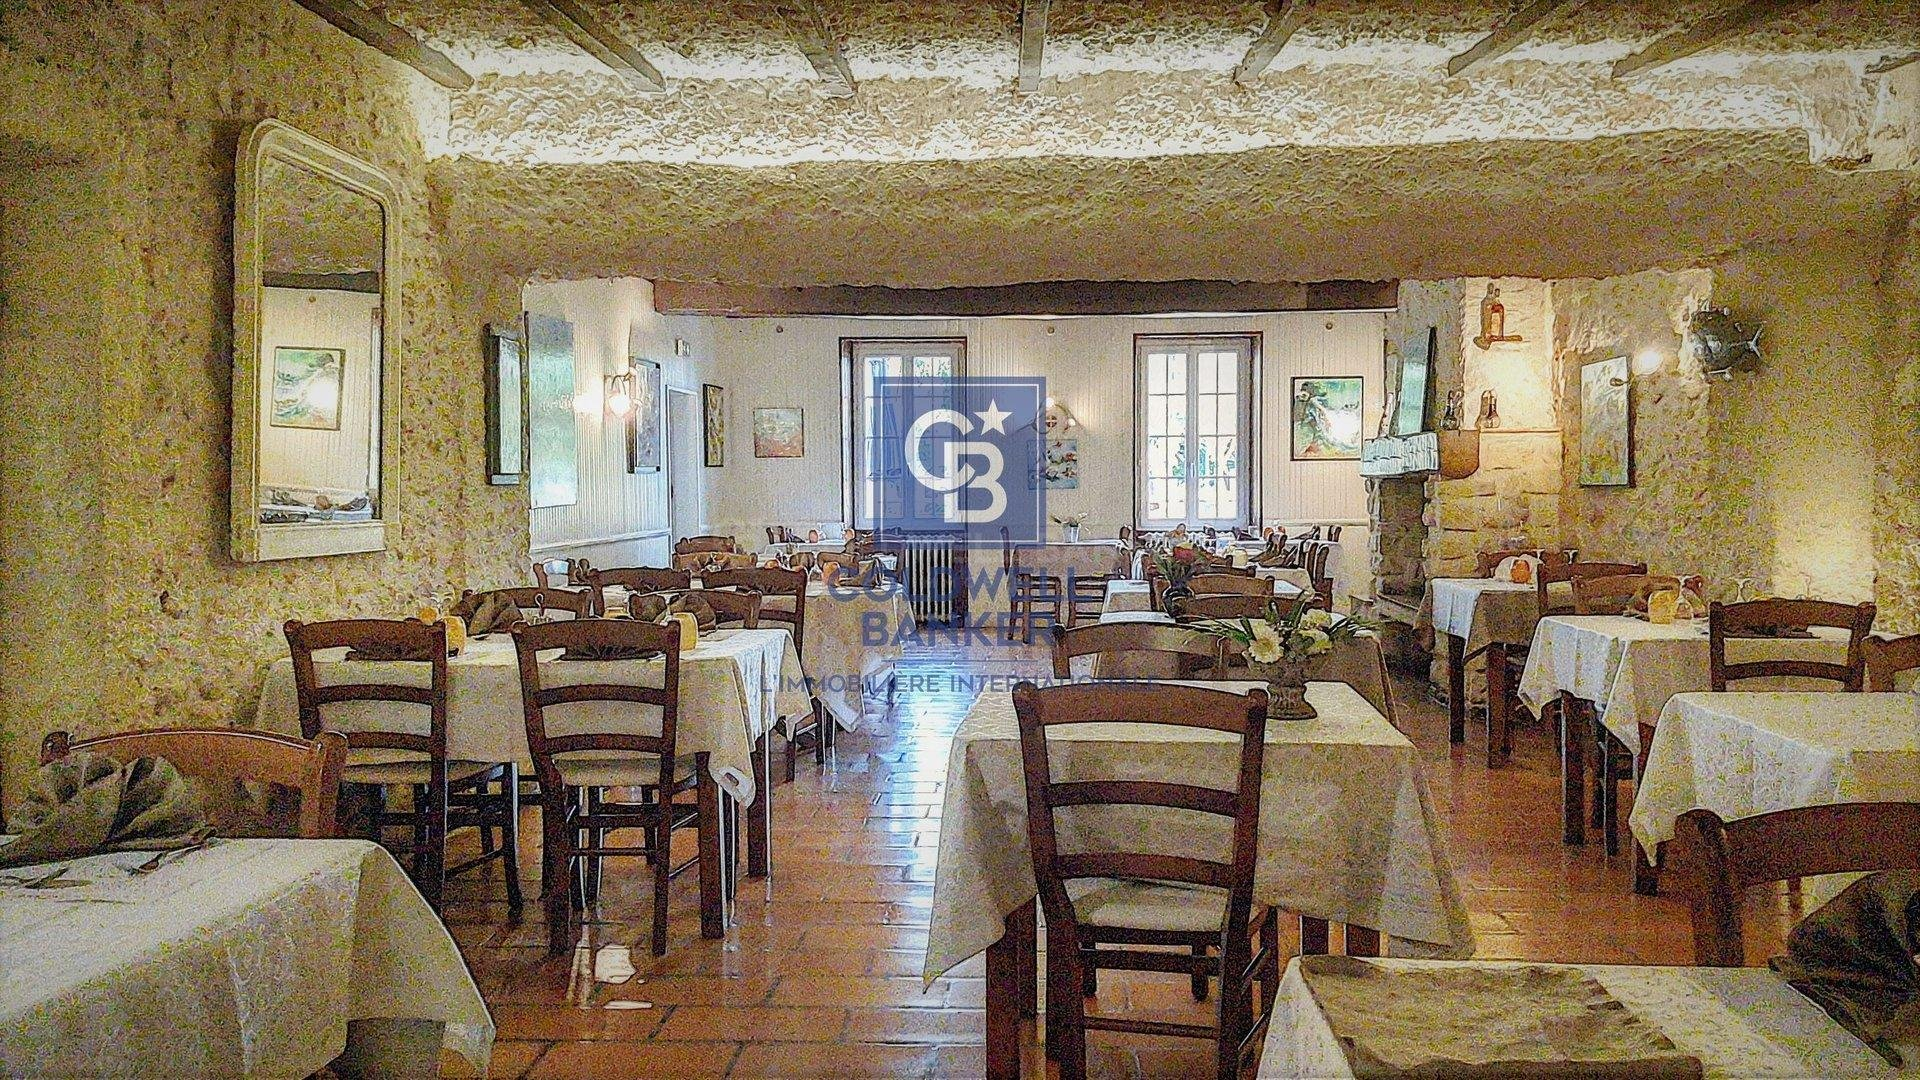 Good Will restaurant, building and lodging for Sale